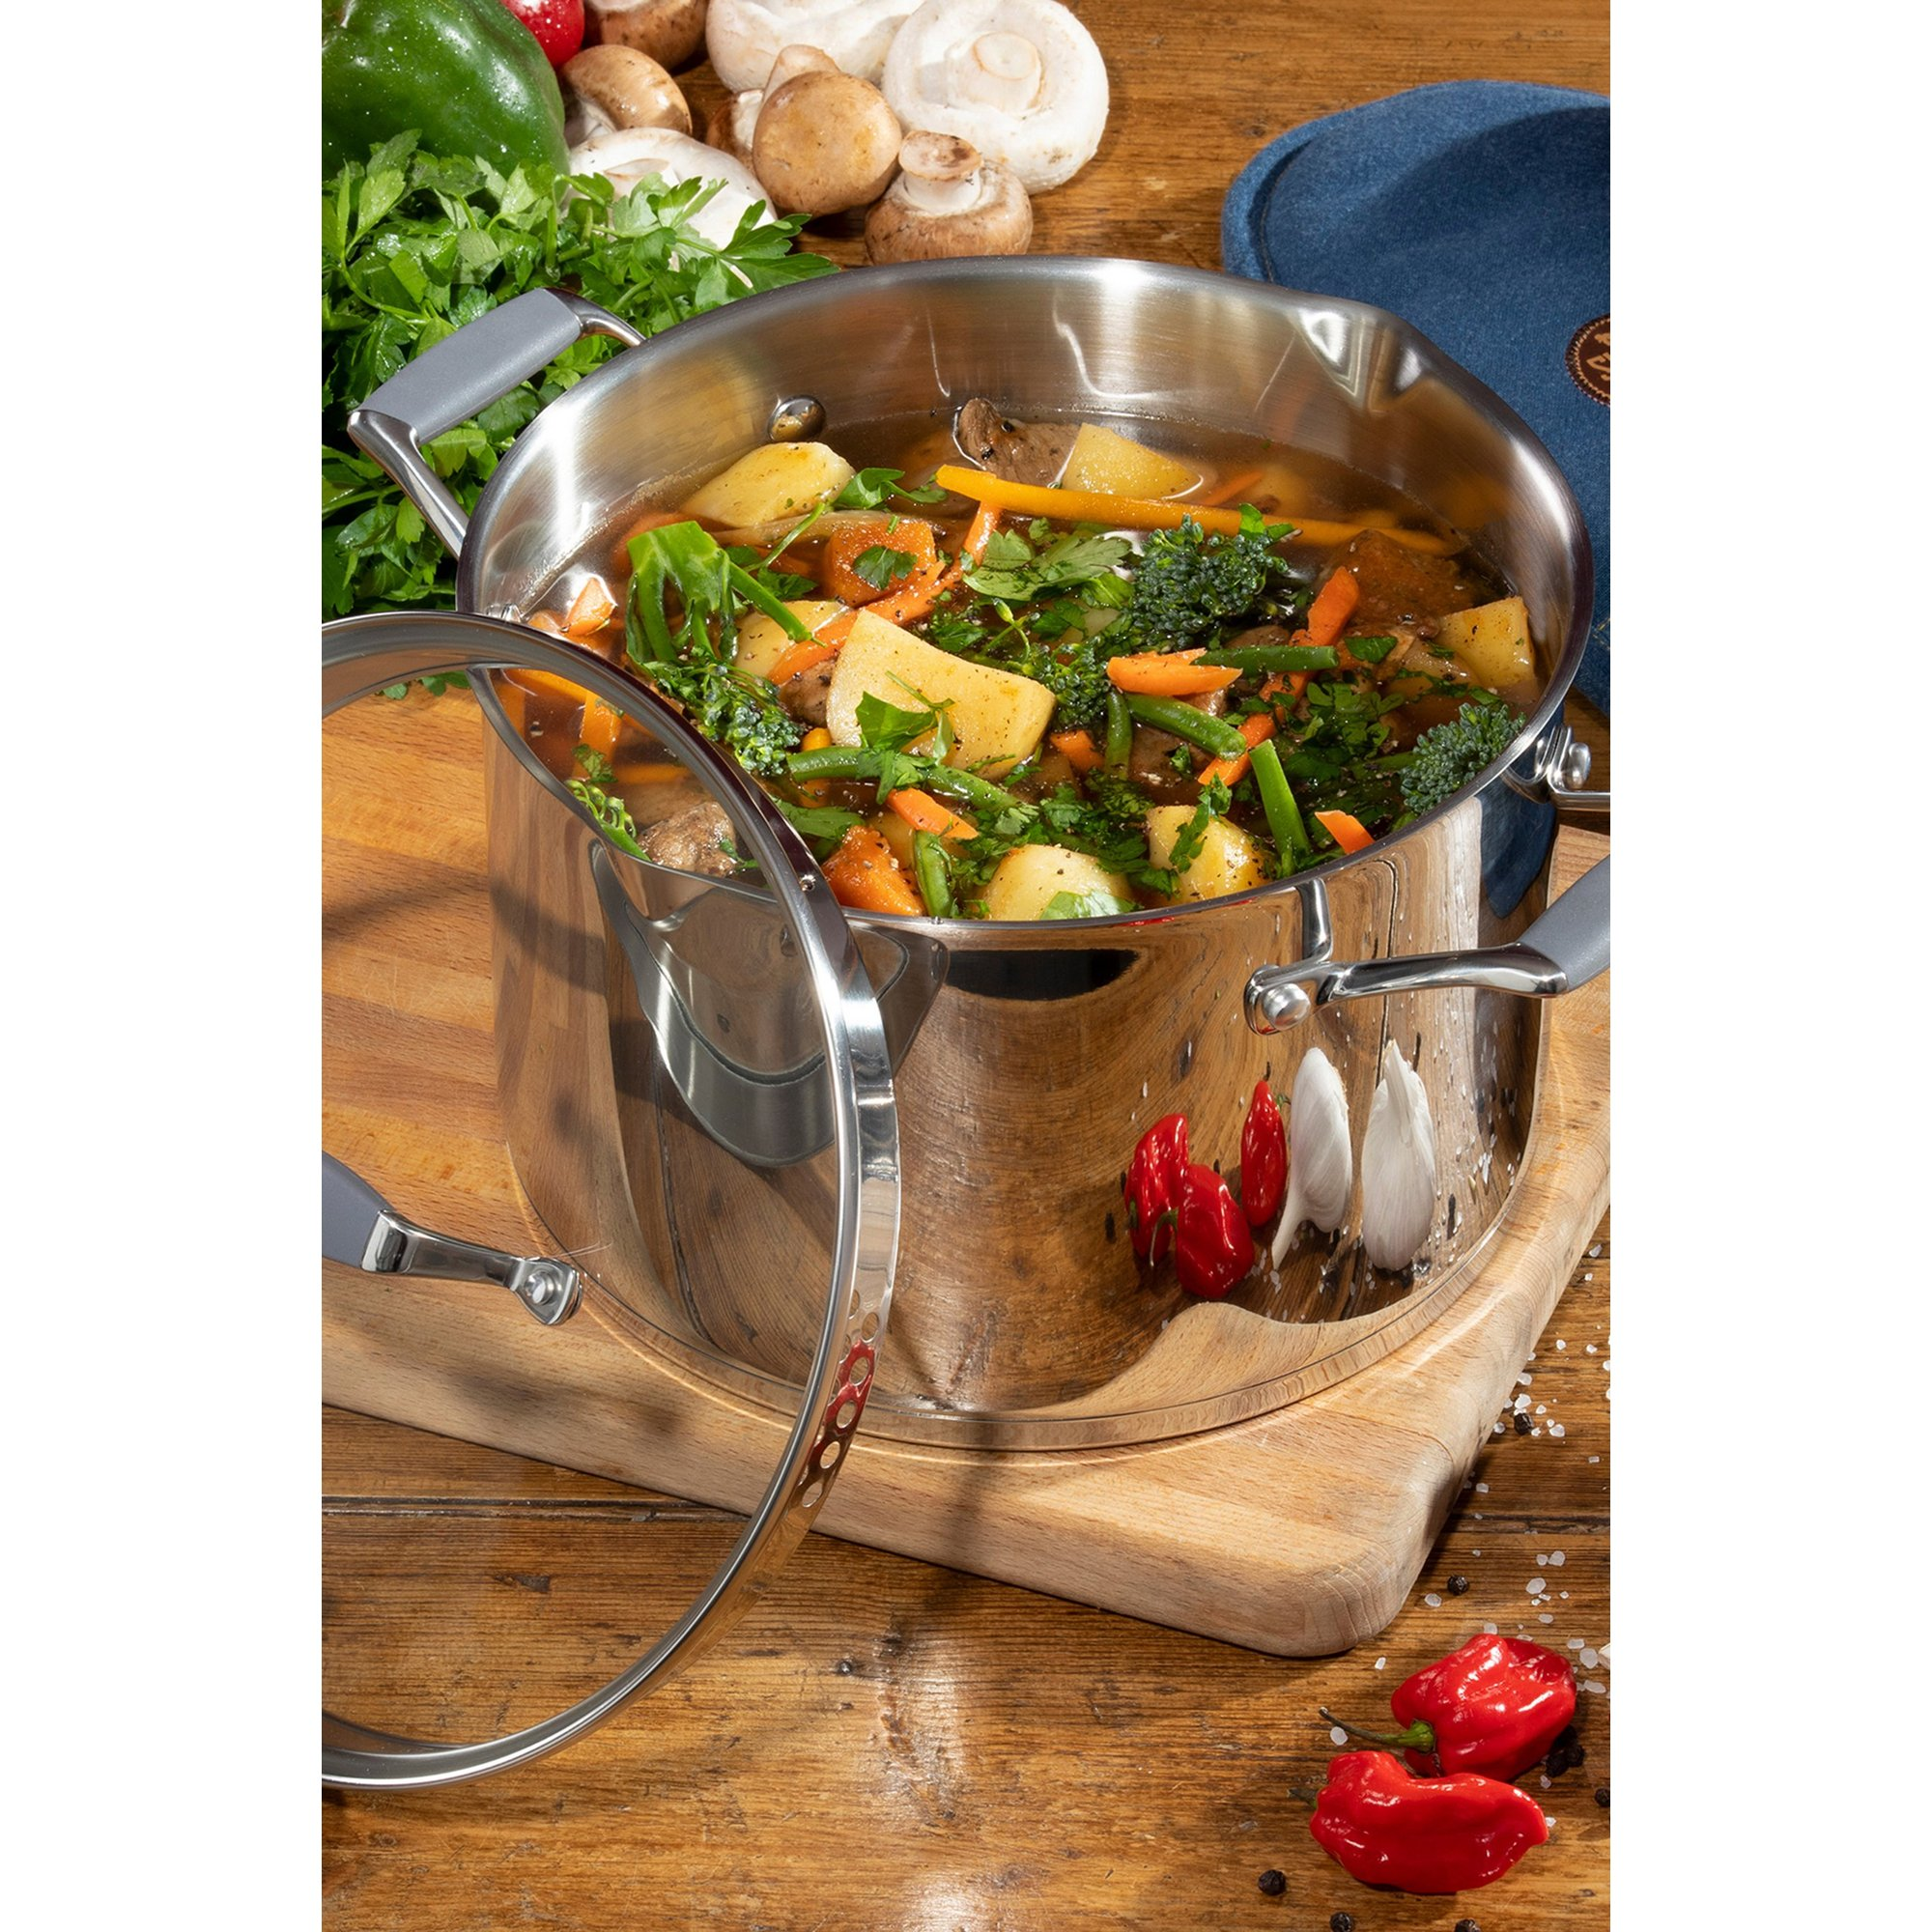 Image of Hairy Bikers 24cm Stainless Steel Professional Casserole Pan